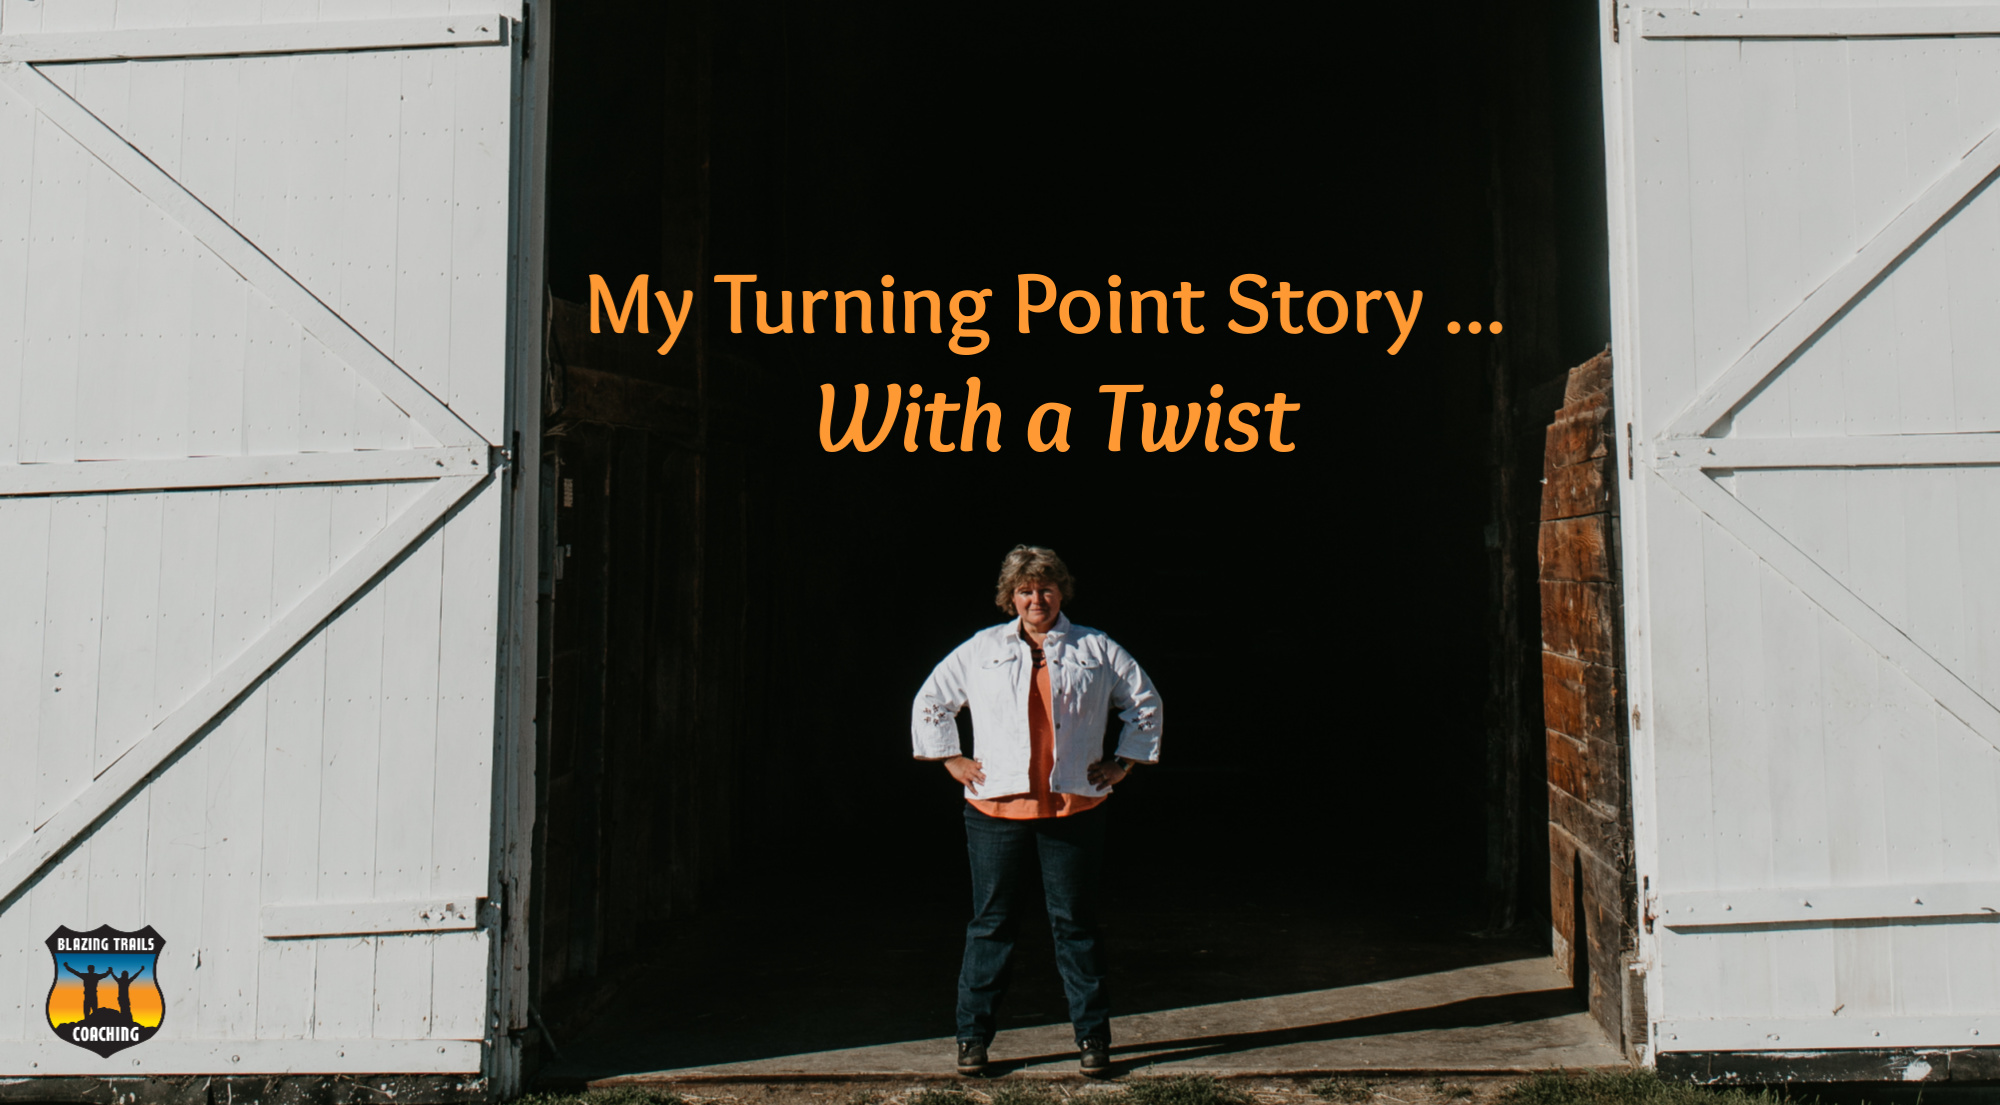 My Turning Point Story ... With a Twist